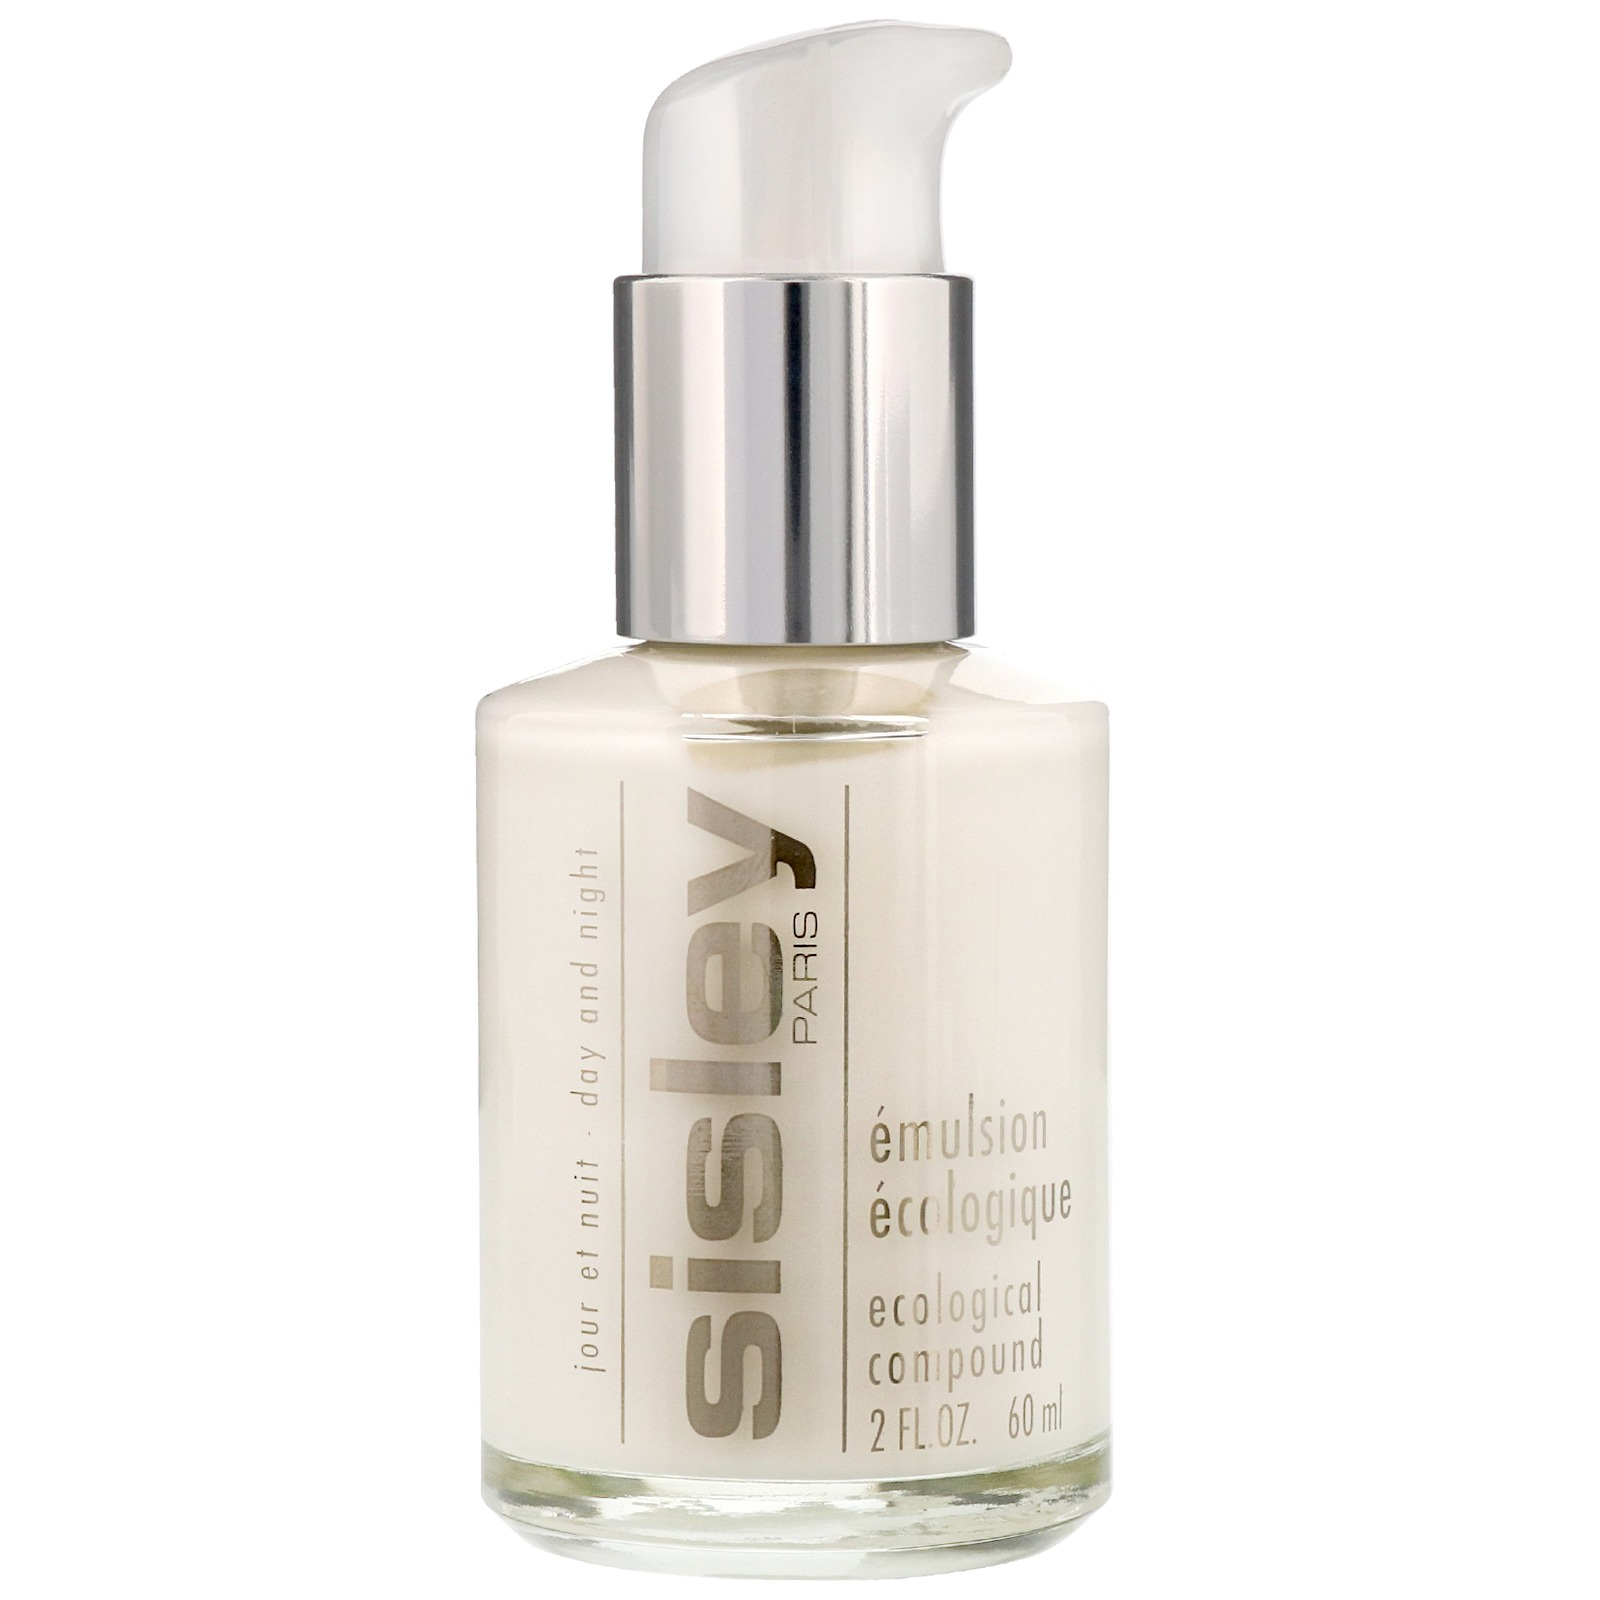 Sisley Moisturisers Ecological Compound Day And Night All Skin Types 60ml